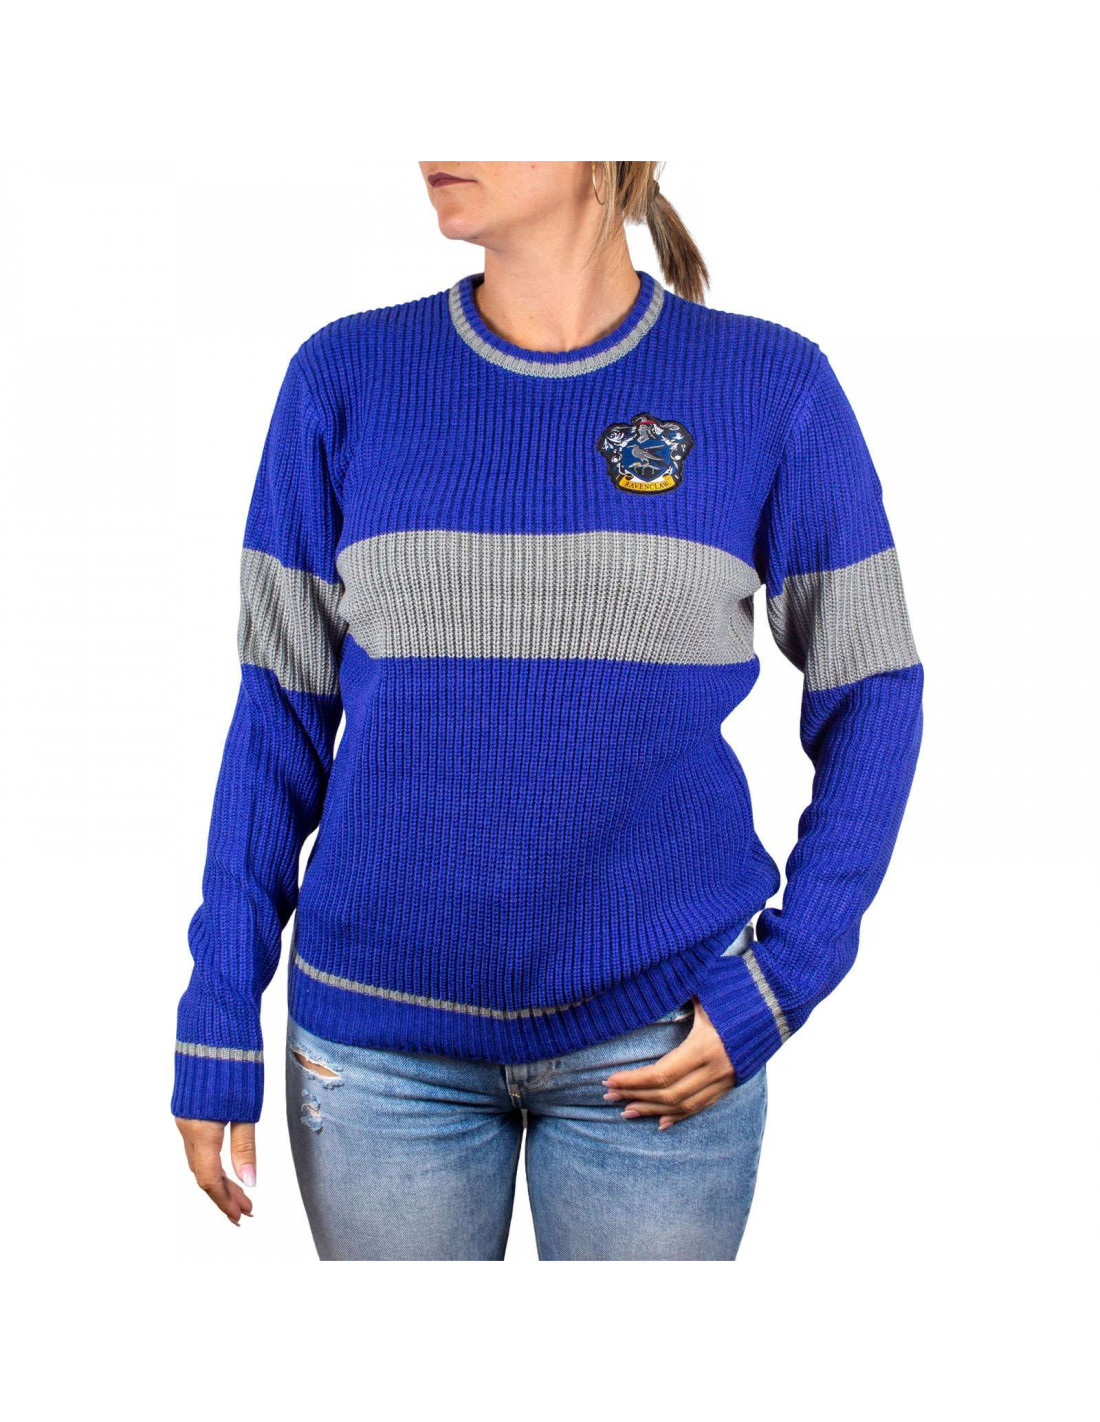 pull-over-harry-potter-ravenclaw-school (2)